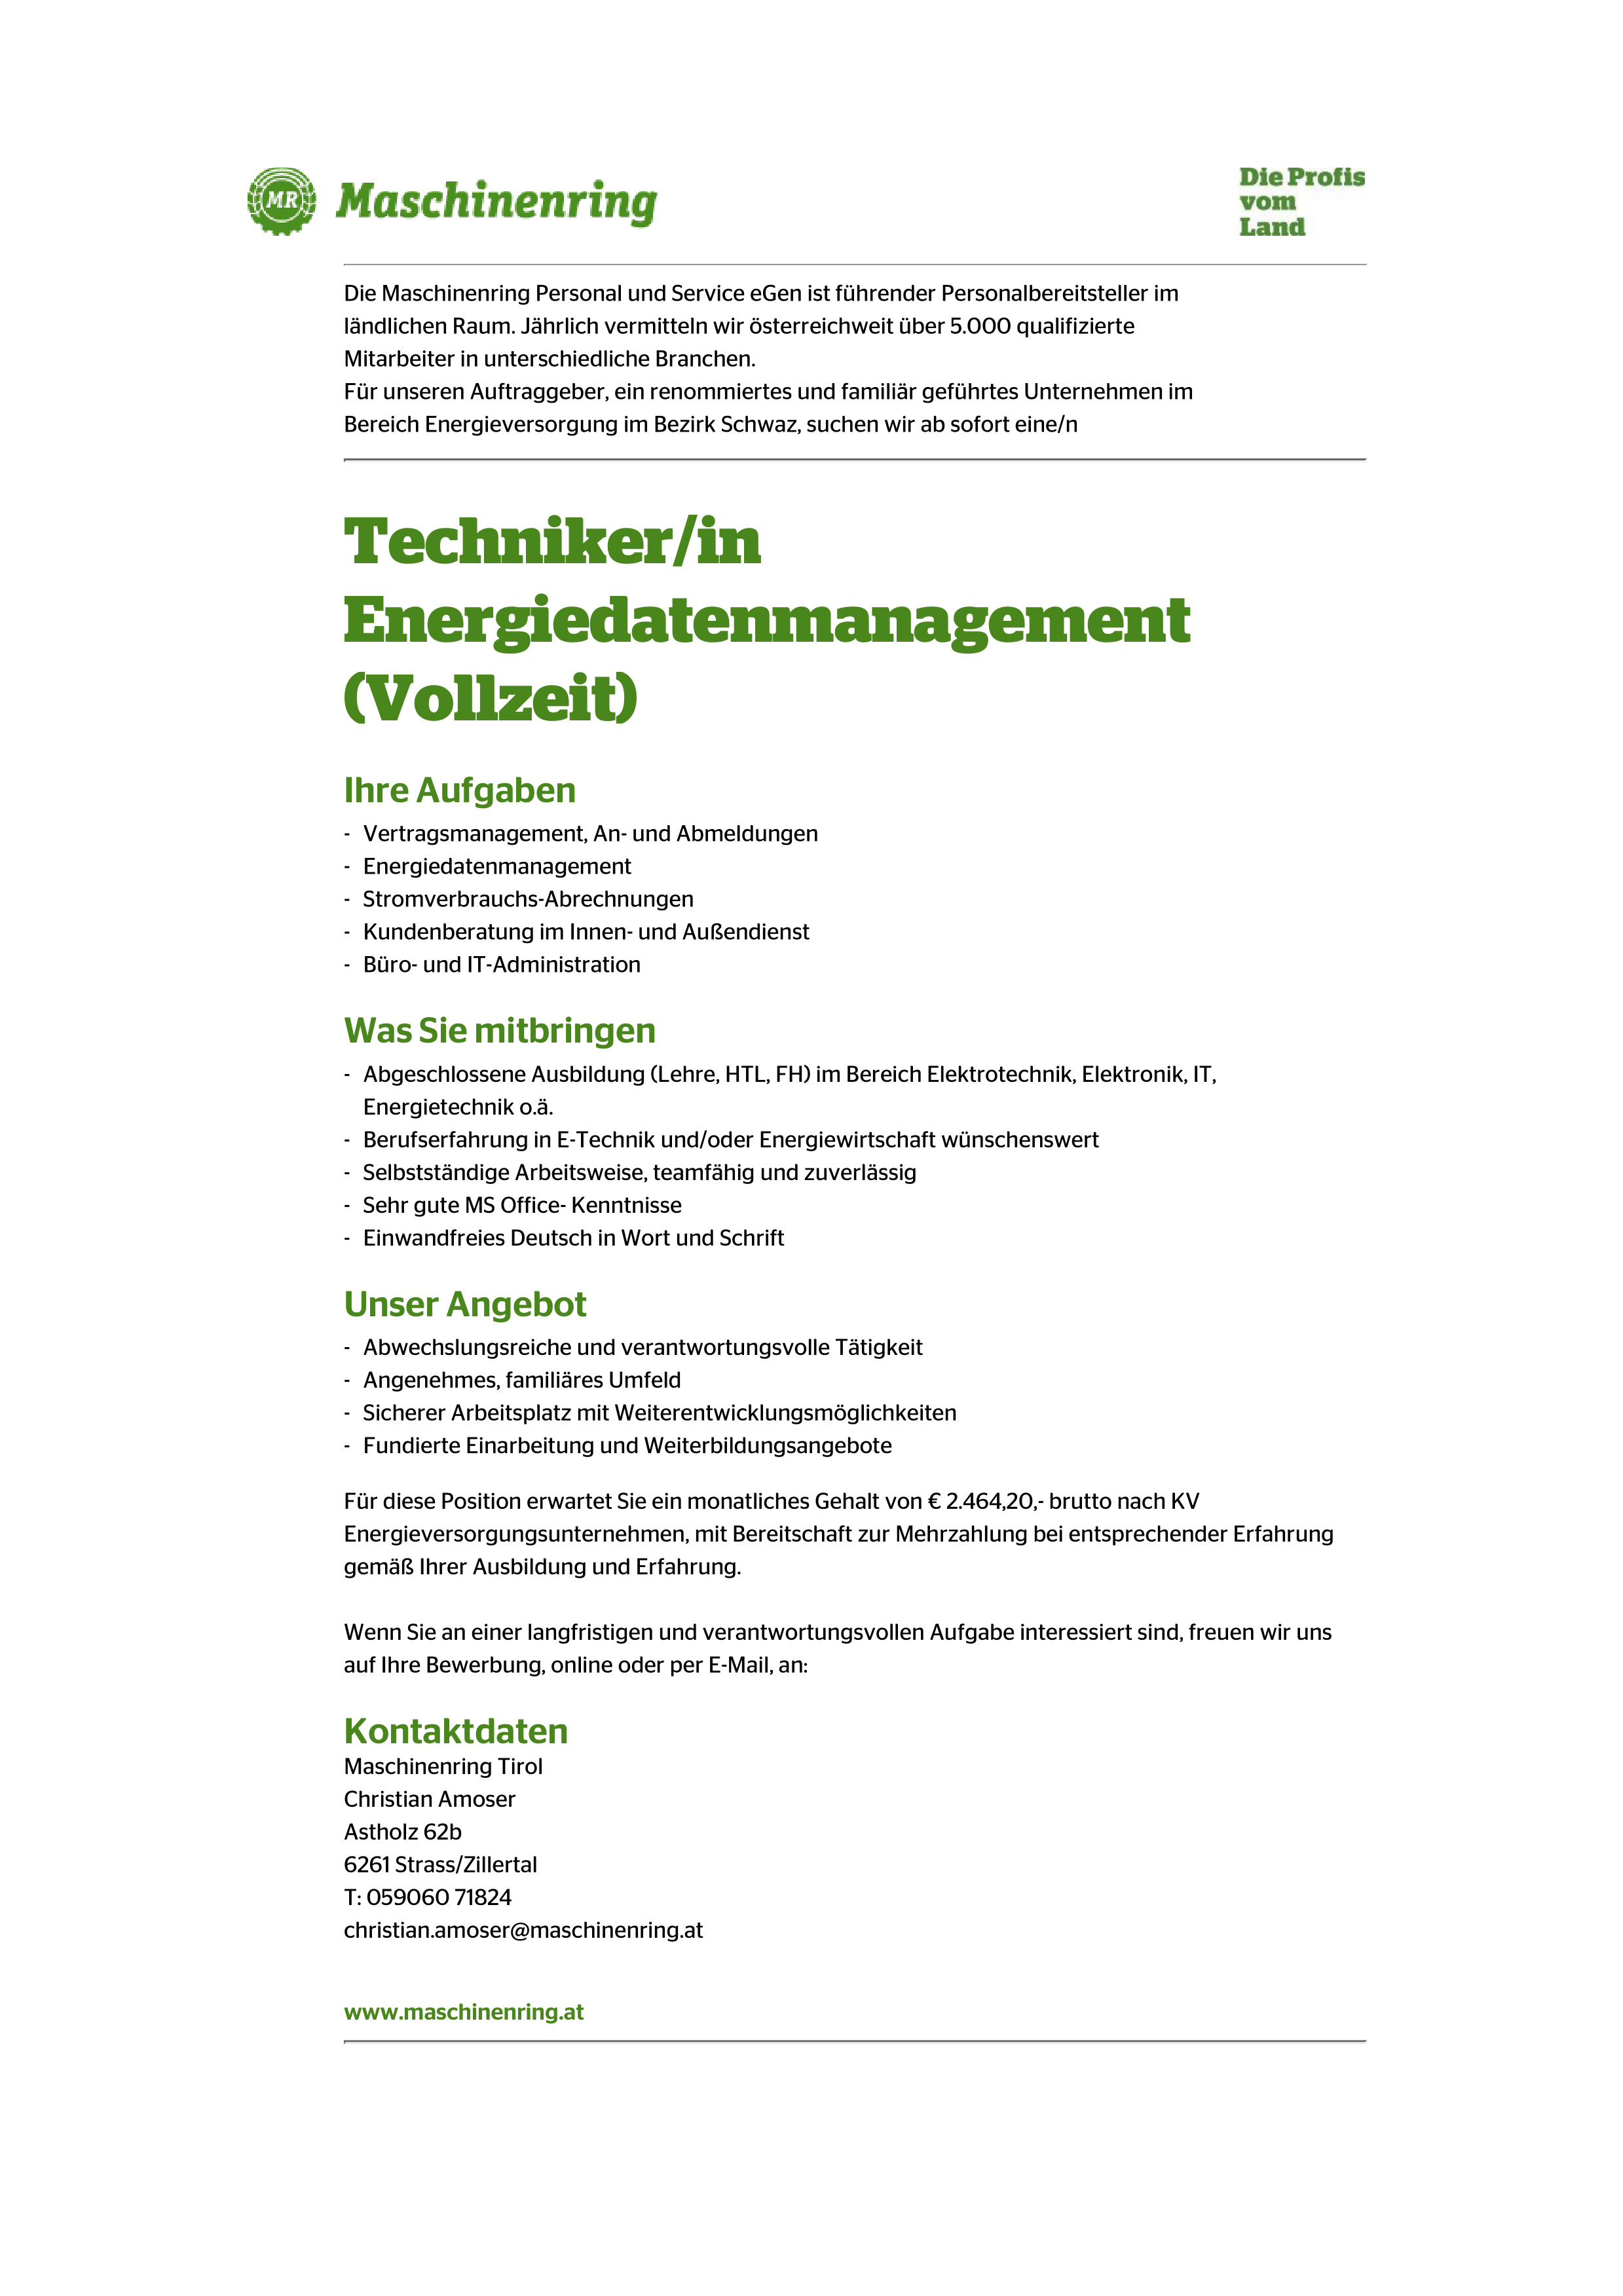 Techniker/in Energiedatenmanagement